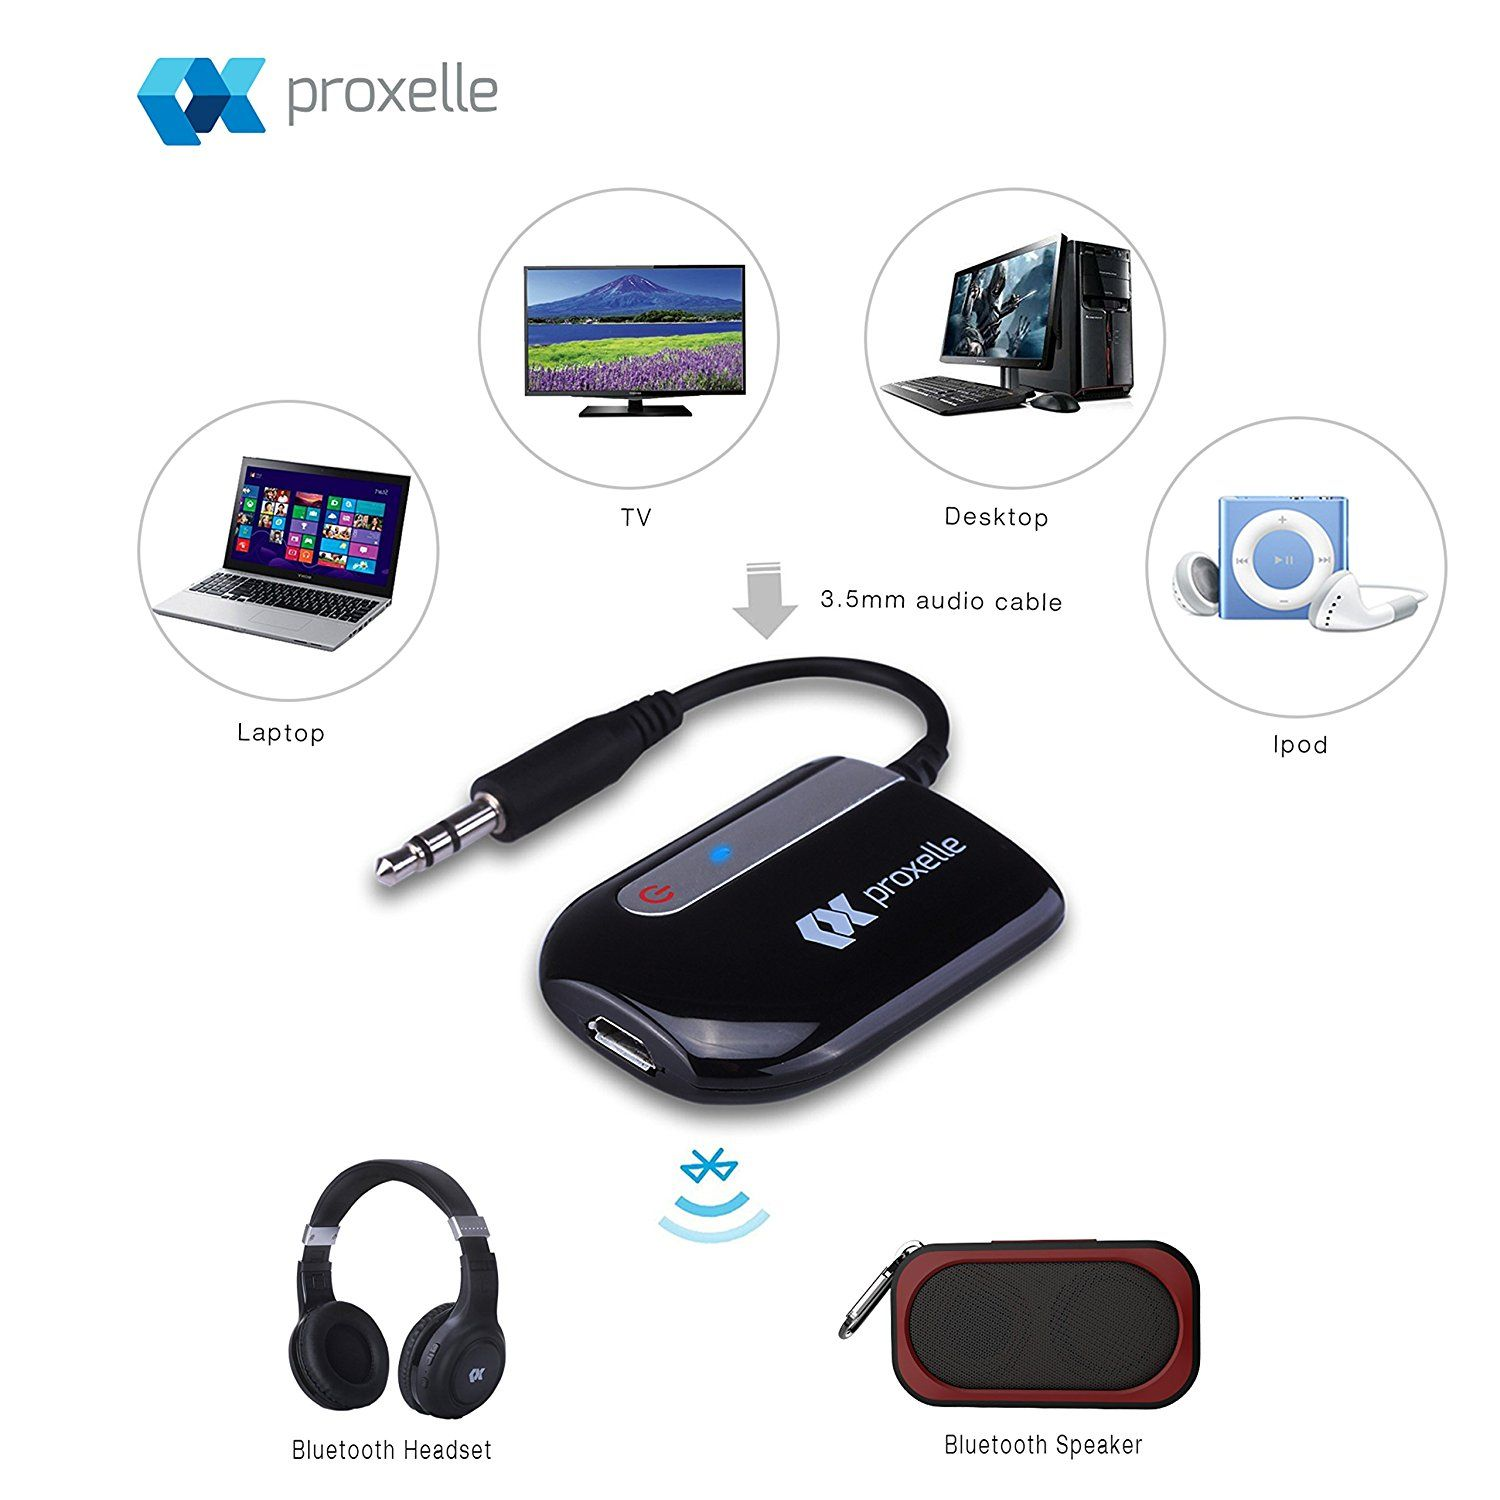 60 Best Discounted Bluetooth Devices Images Bluetooth Accessories Bluetooth Device Bluetooth